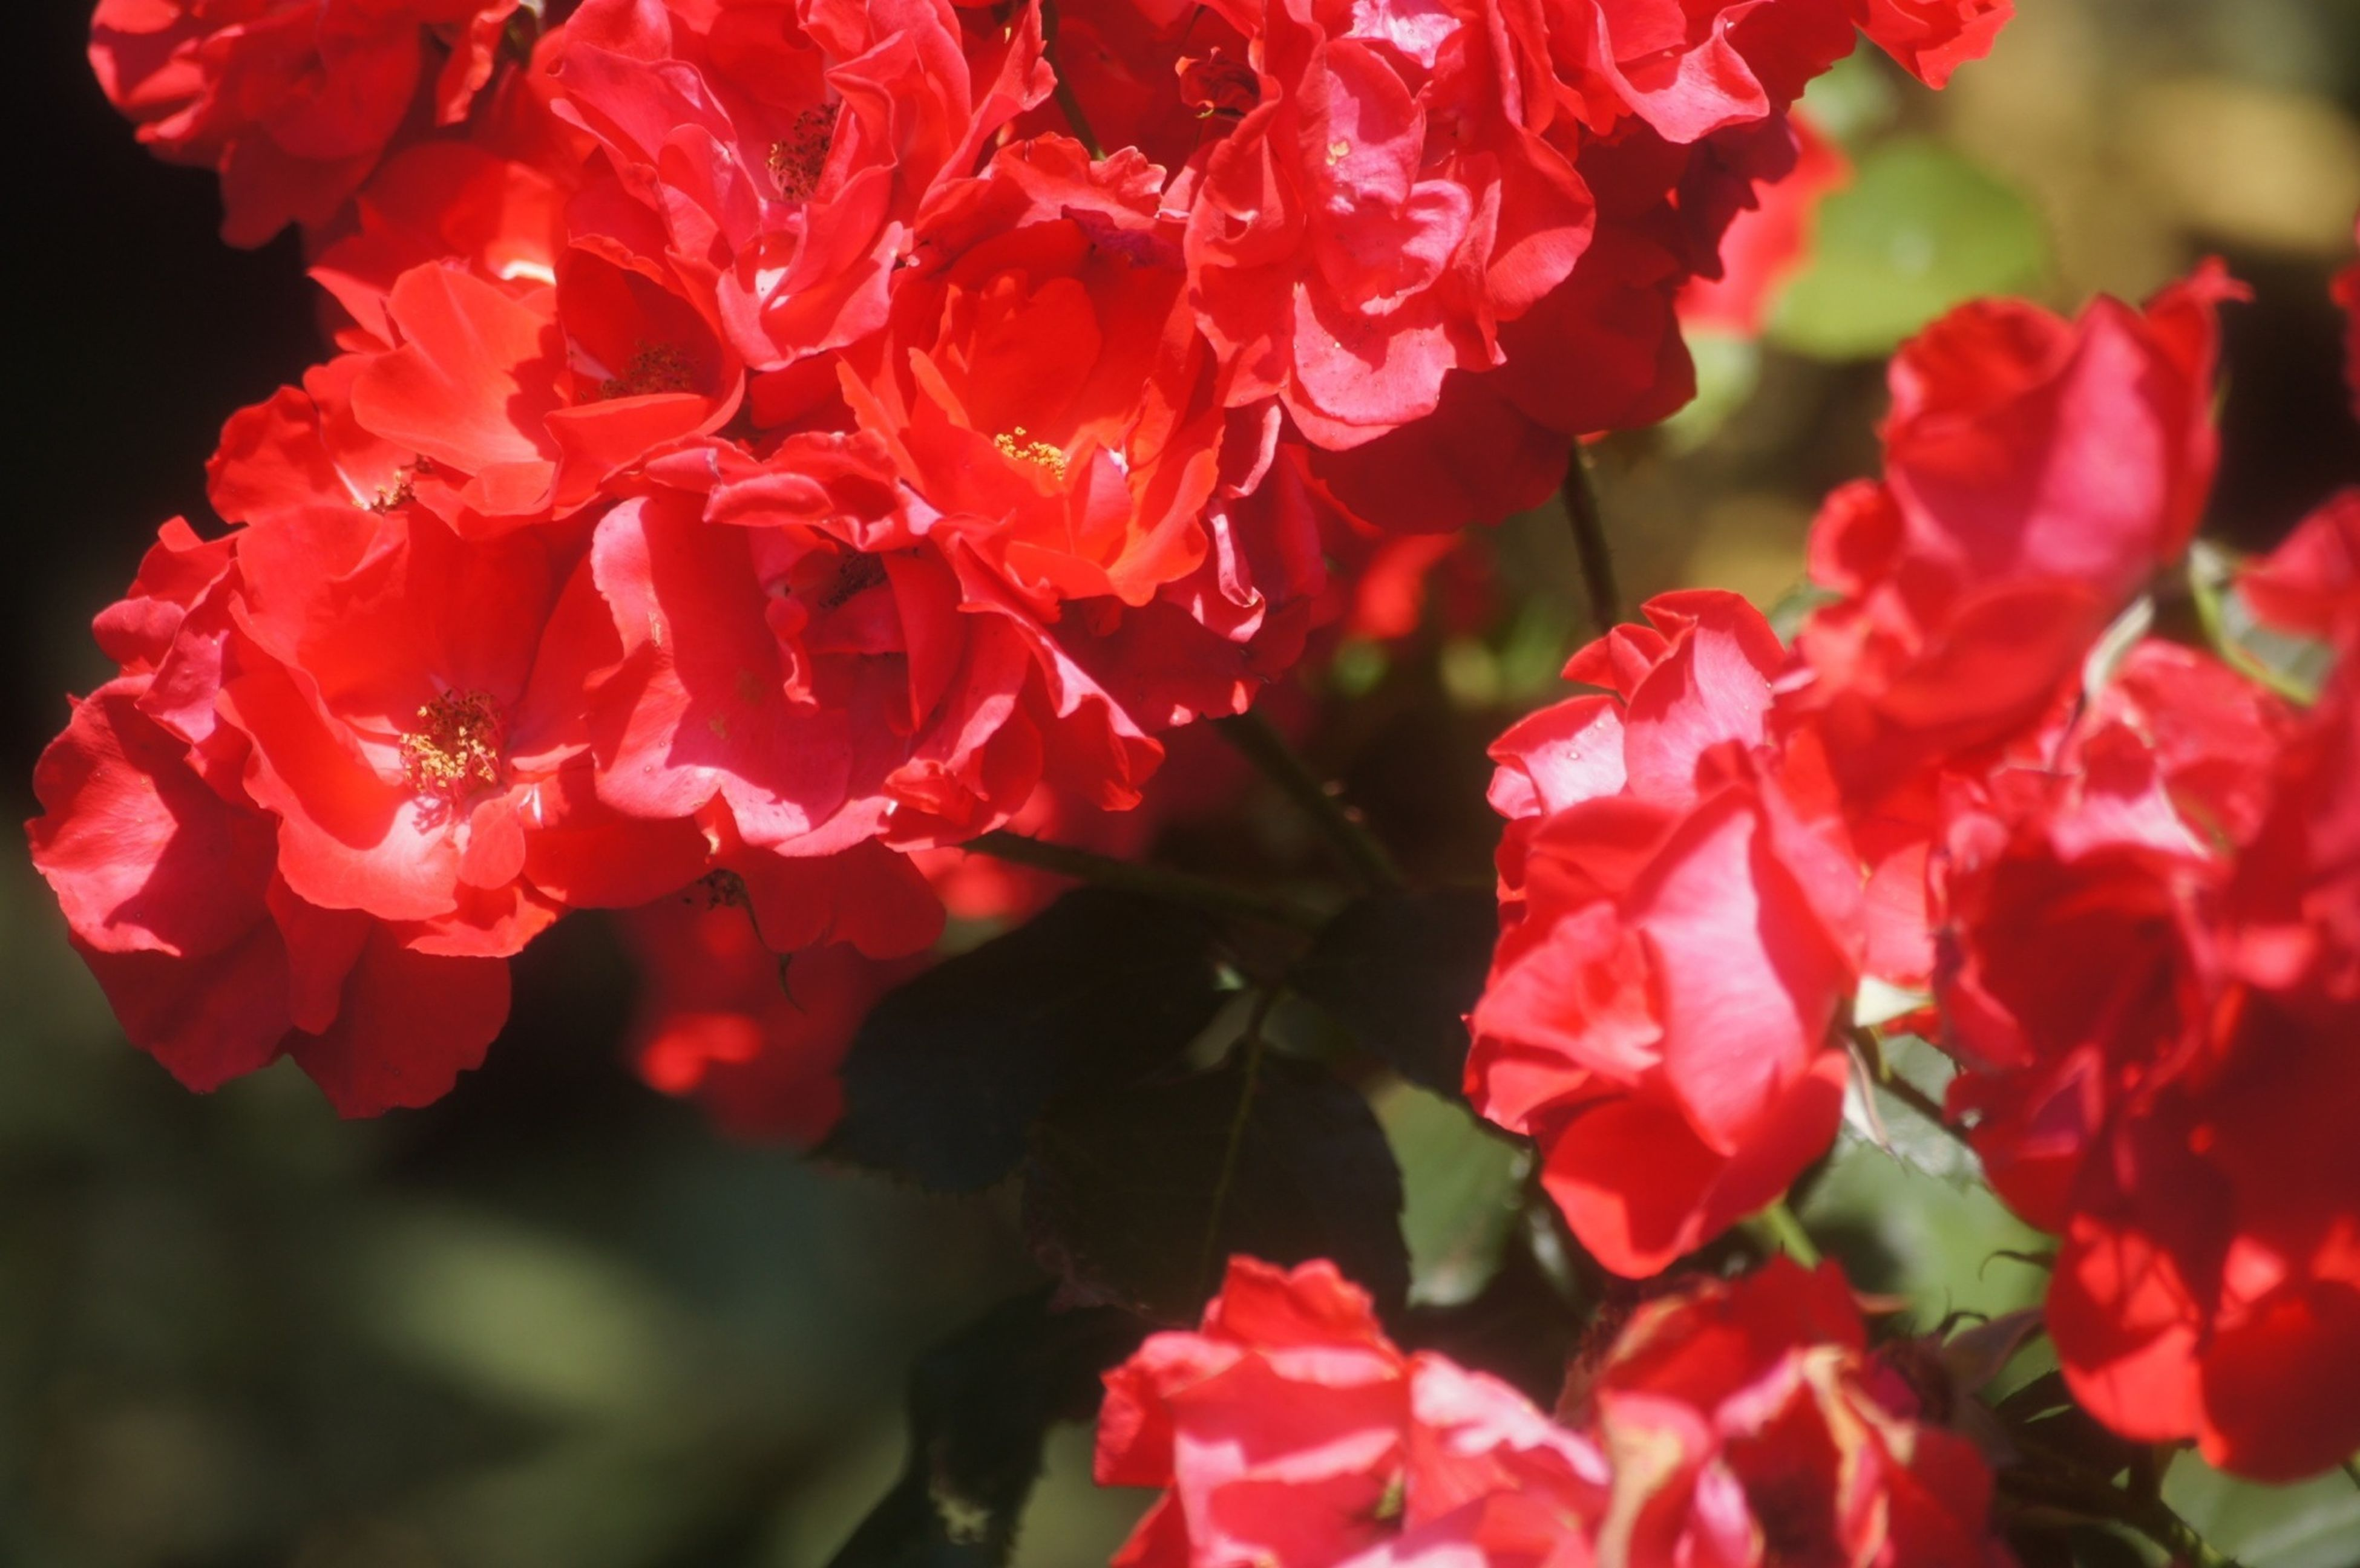 flower, petal, freshness, fragility, flower head, red, growth, beauty in nature, close-up, blooming, focus on foreground, nature, plant, rose - flower, in bloom, pink color, park - man made space, blossom, no people, outdoors